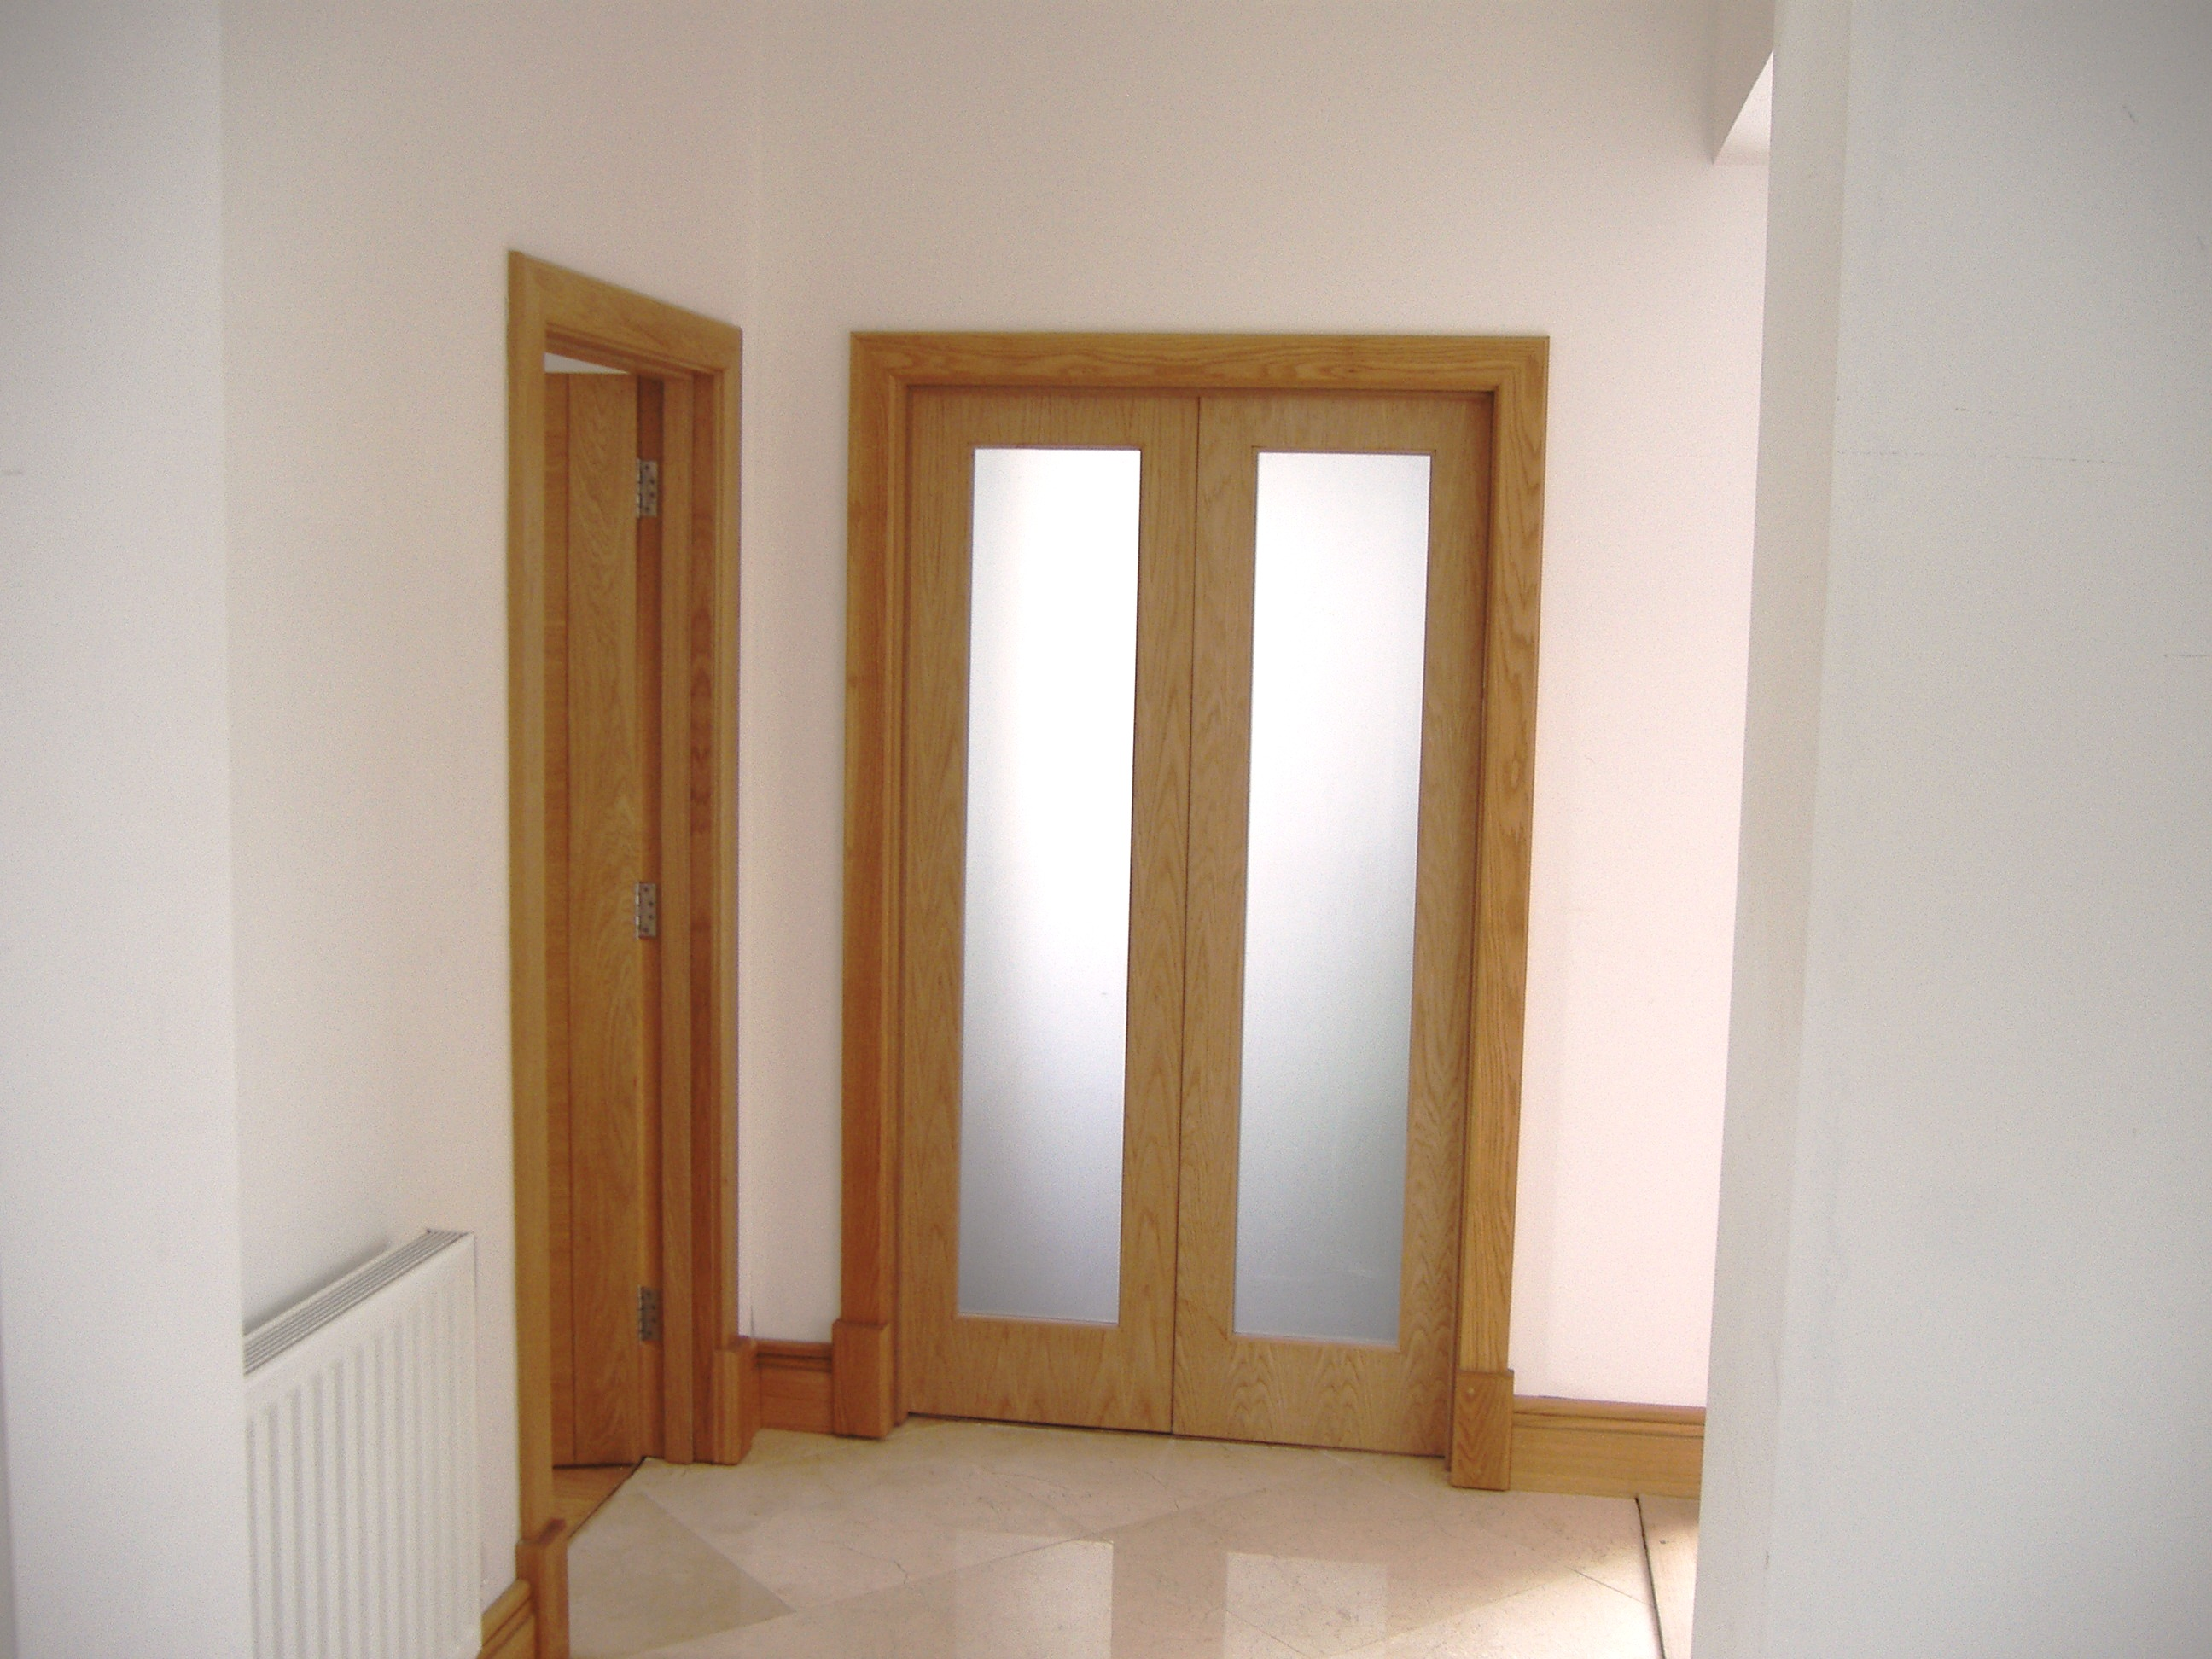 Advantages Of A Frosted Glass Interior Door